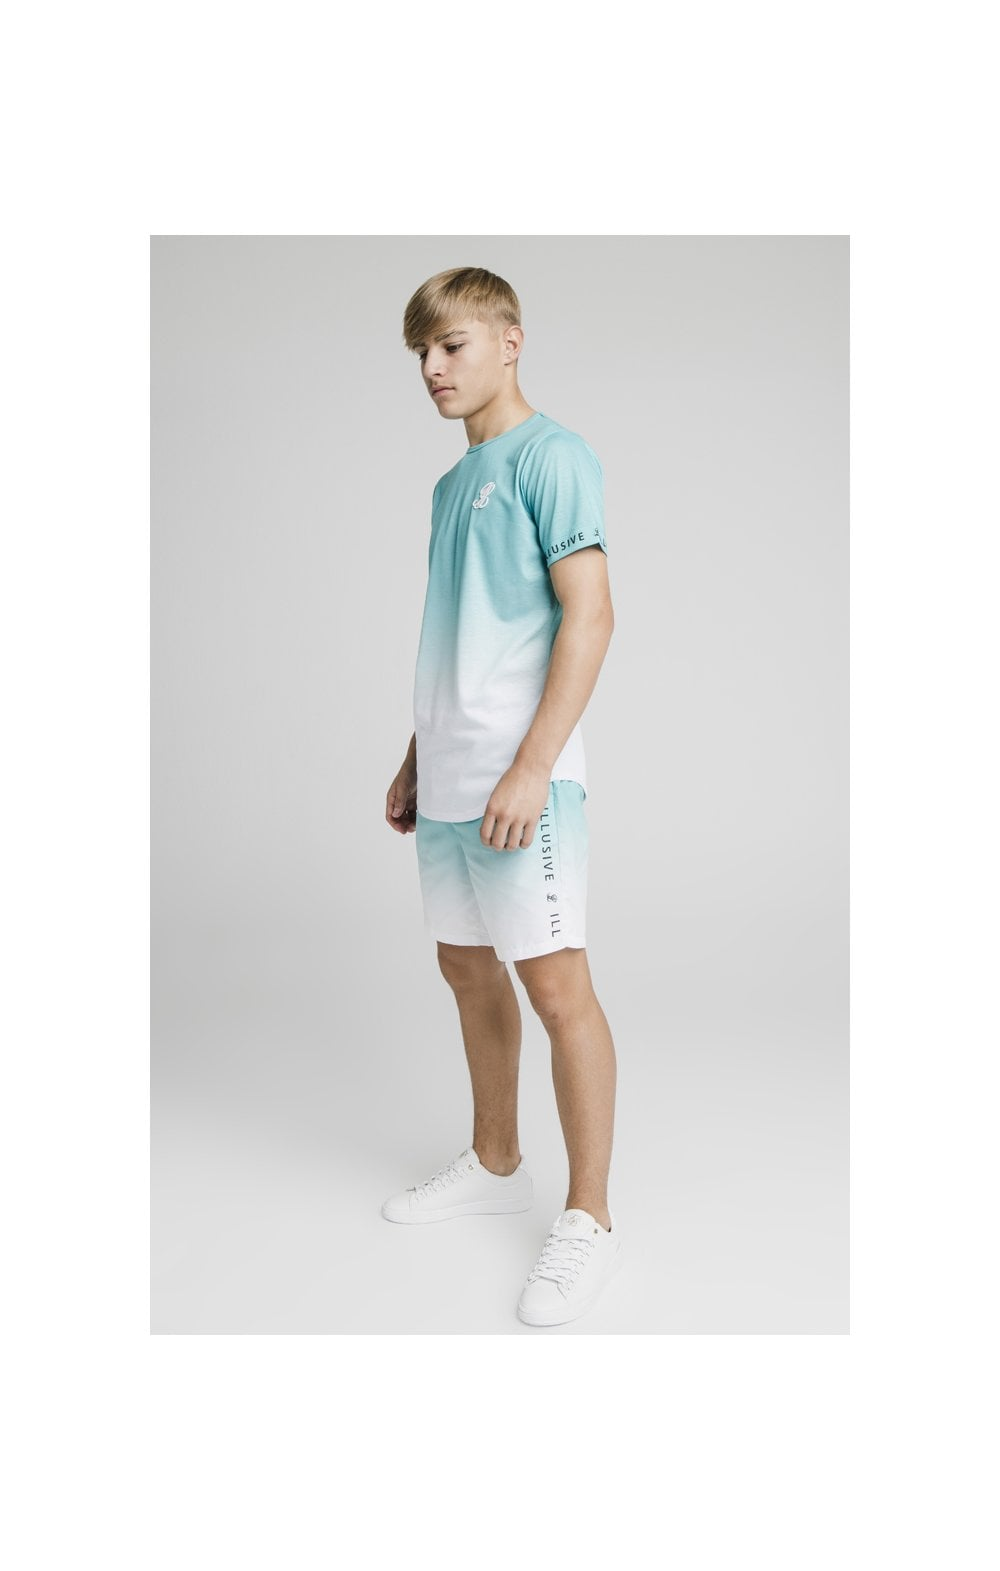 Load image into Gallery viewer, Illusive London Fade Swim Shorts - Teal & White (7)